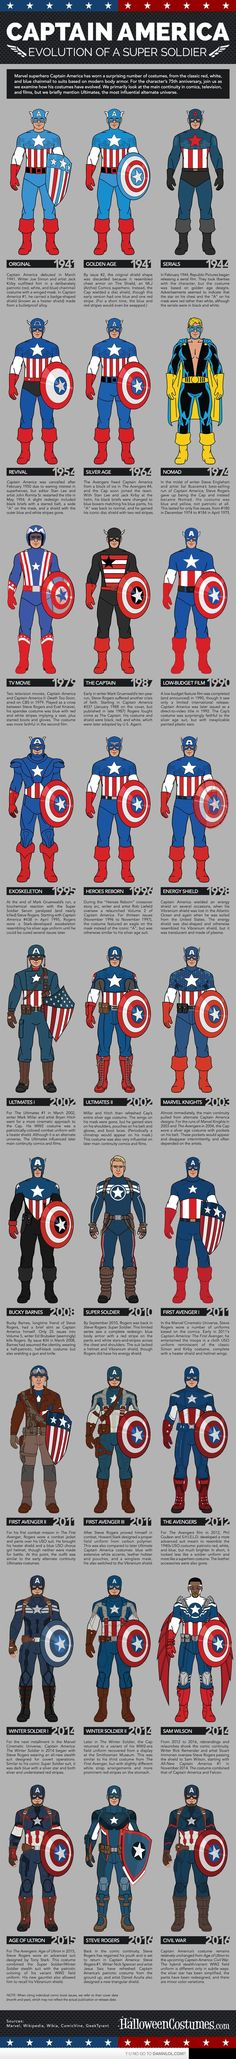 The Evolution Of Captain America's Costume In Comic & Film.